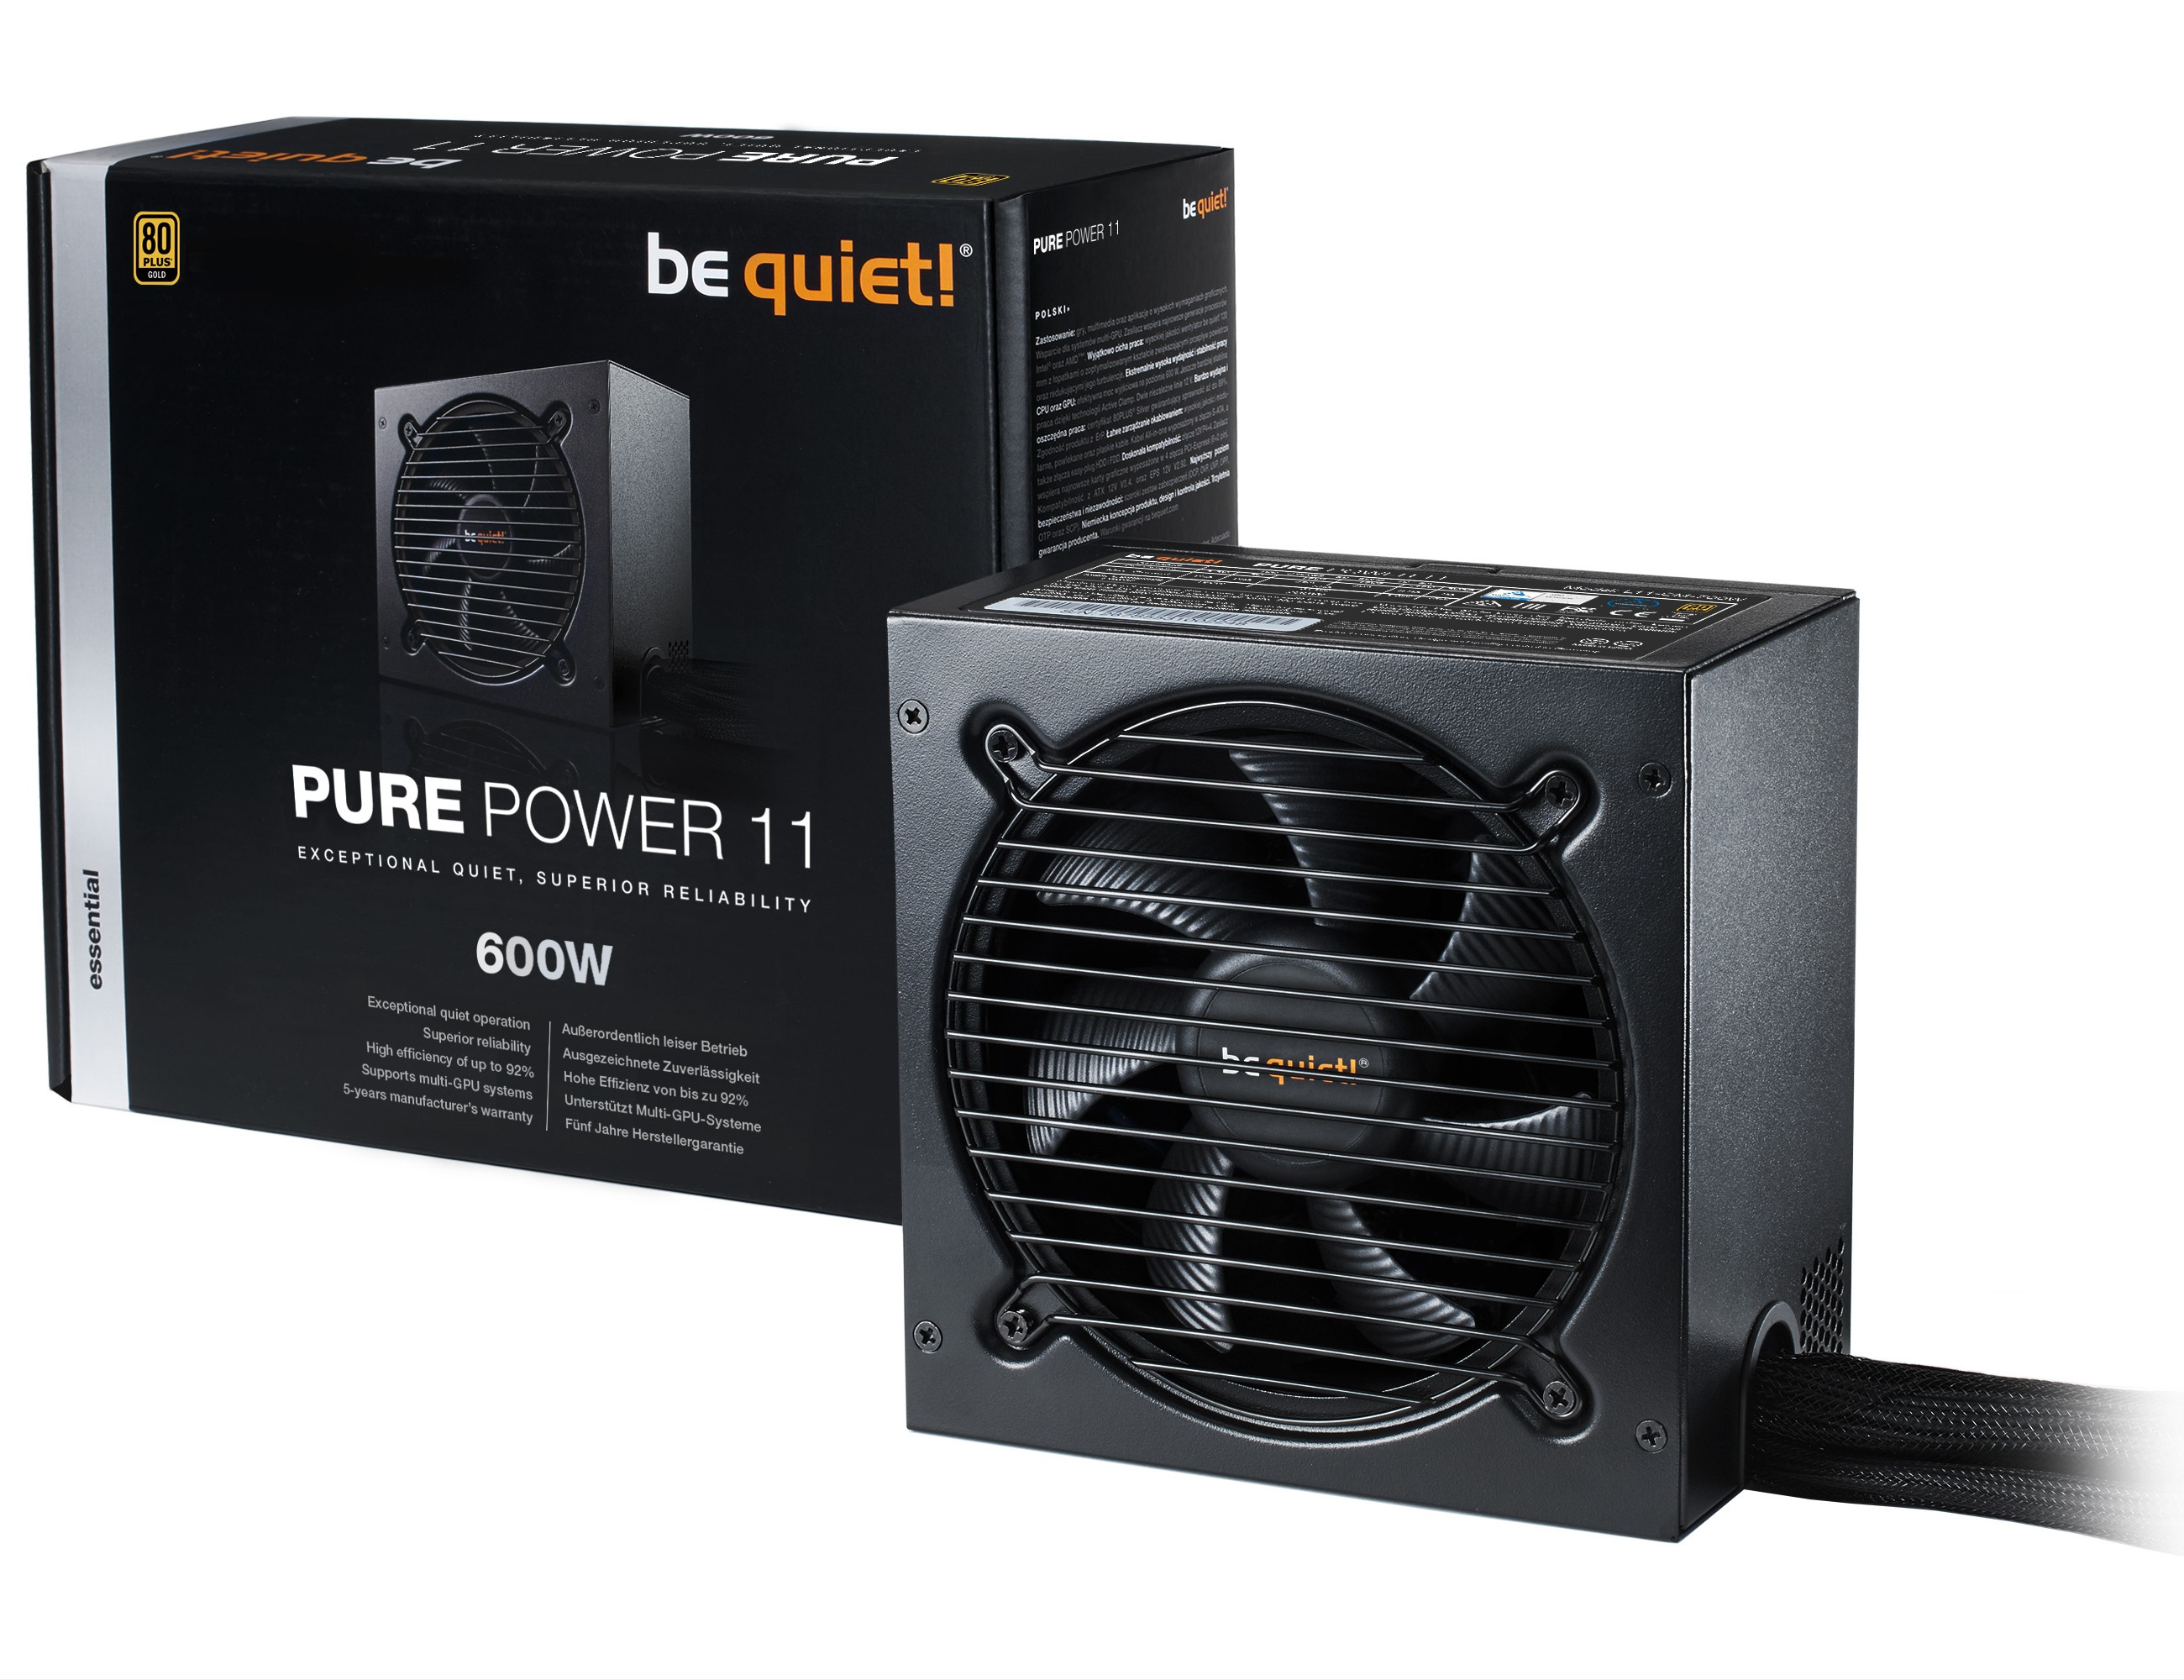 be quiet! Pure Power 11 600W, 80+ Gold, ErP, Energy Star 6.0 APFC, Sleeved, 4xPCI-Ex, 6xSATA, 3xPATA, 2 Rails, 120 mm Fan